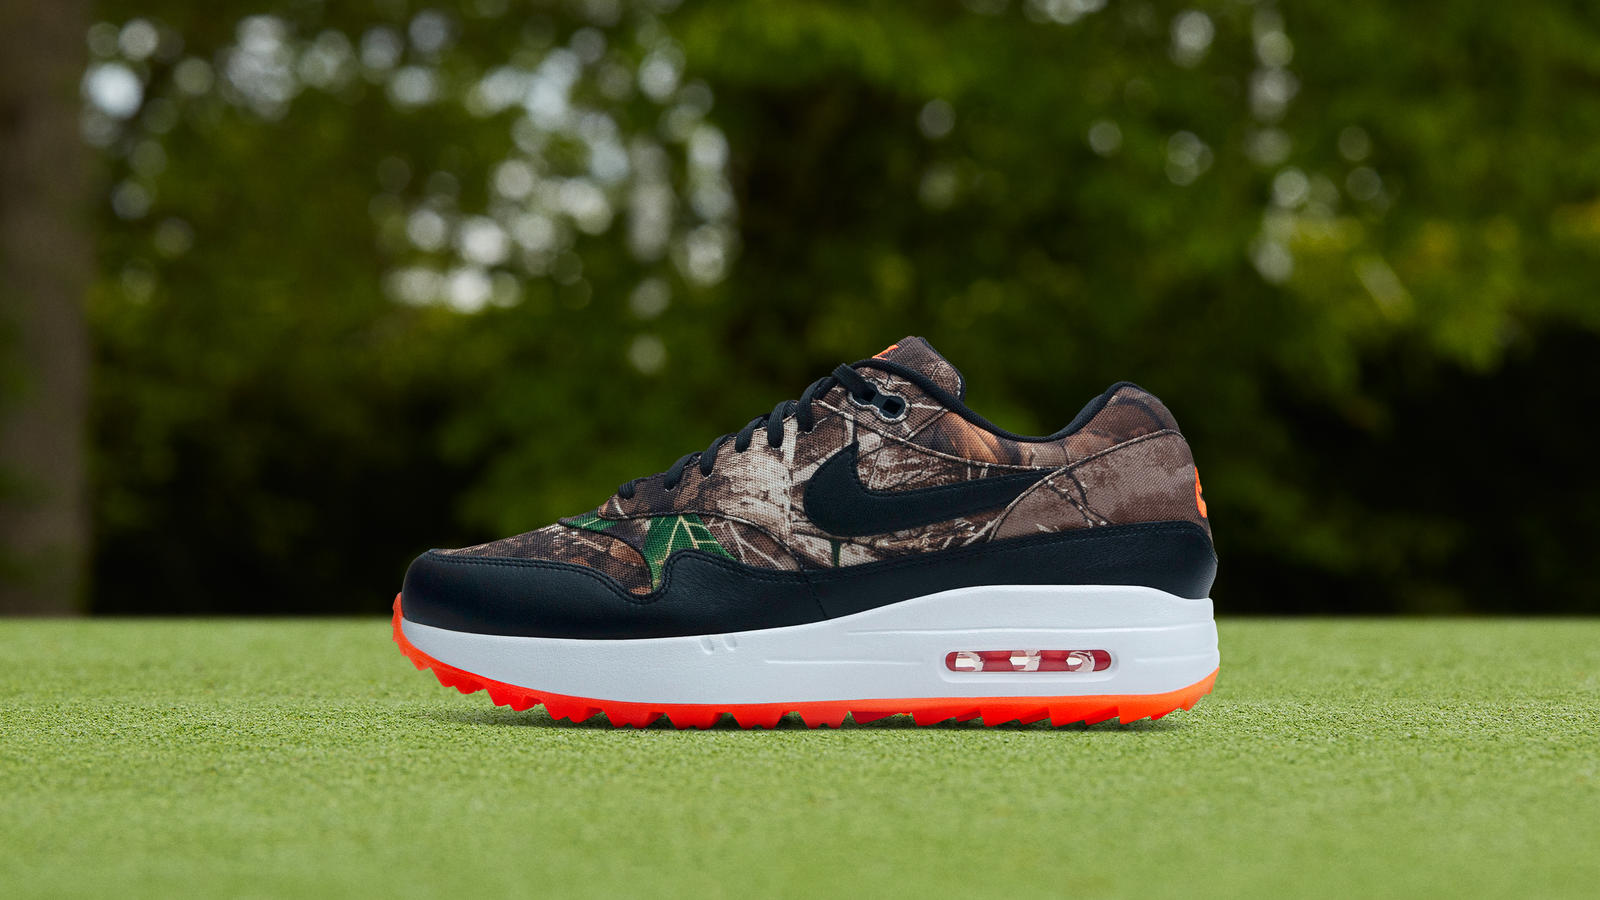 Nike Air Max 1 Golf Realtree Official Images and Release